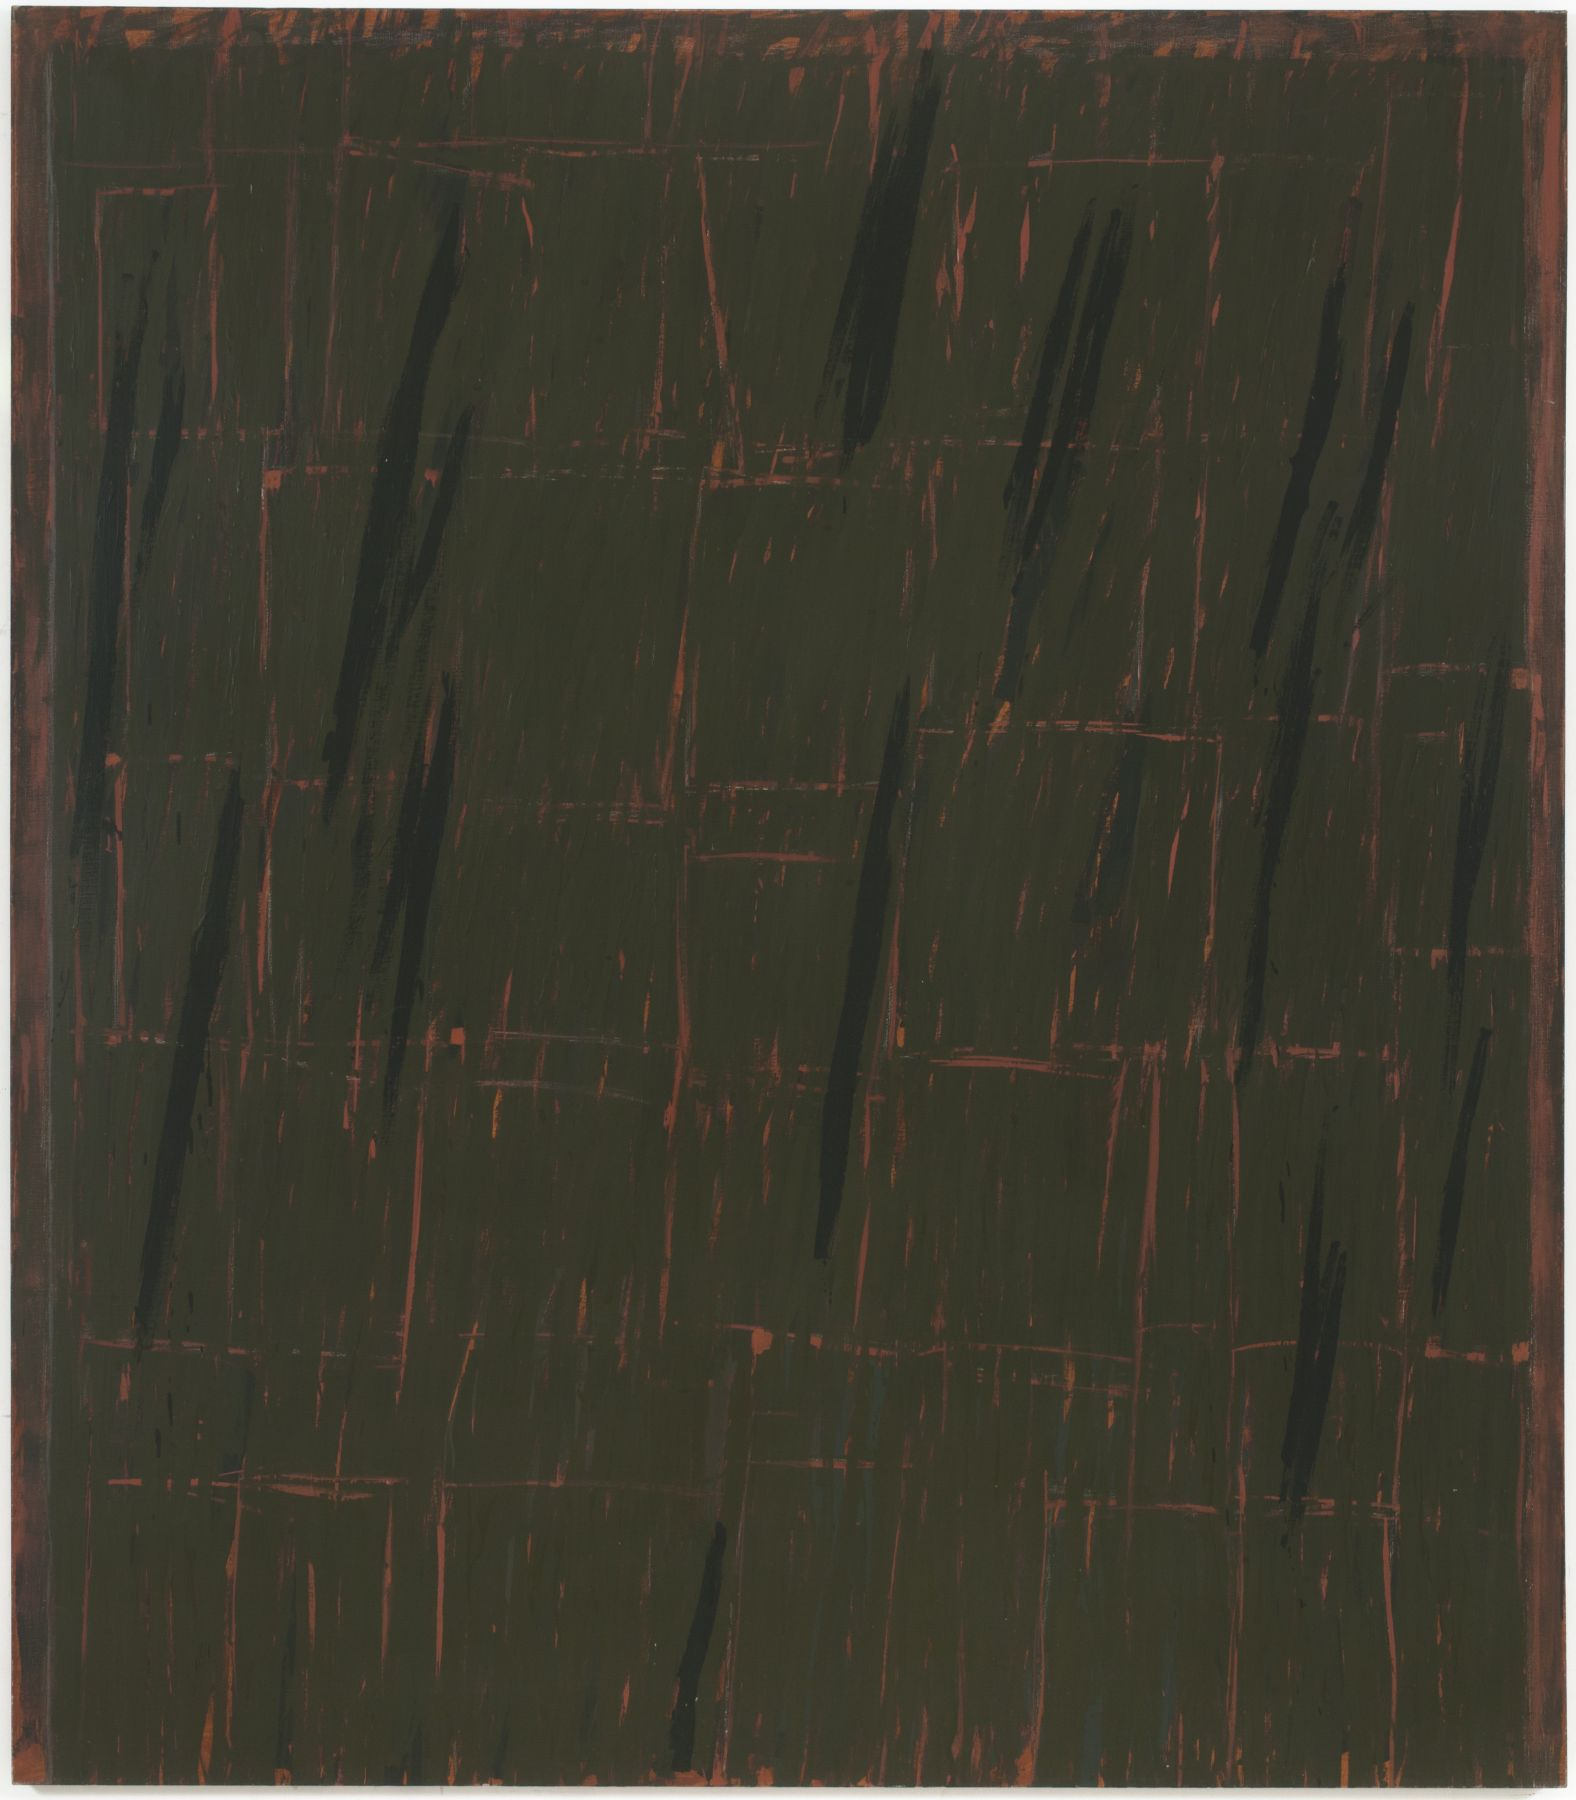 WS #2, 1968, Oil on canvas